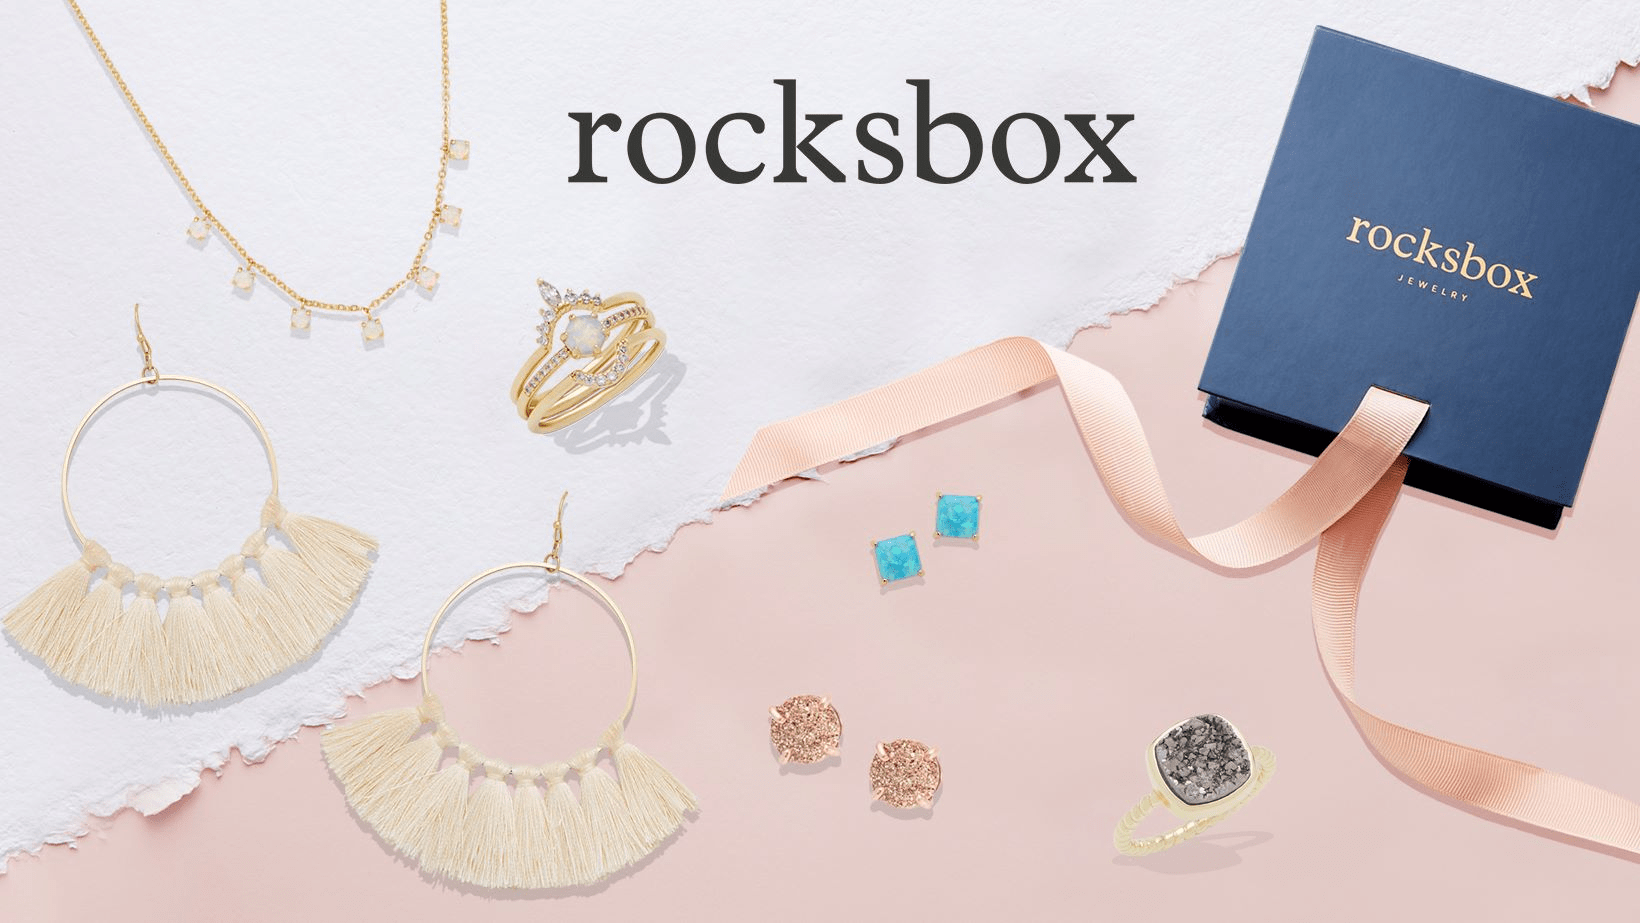 RocksBox Gift Subscription Deal: $10 Off Gifts + Try it FREE!